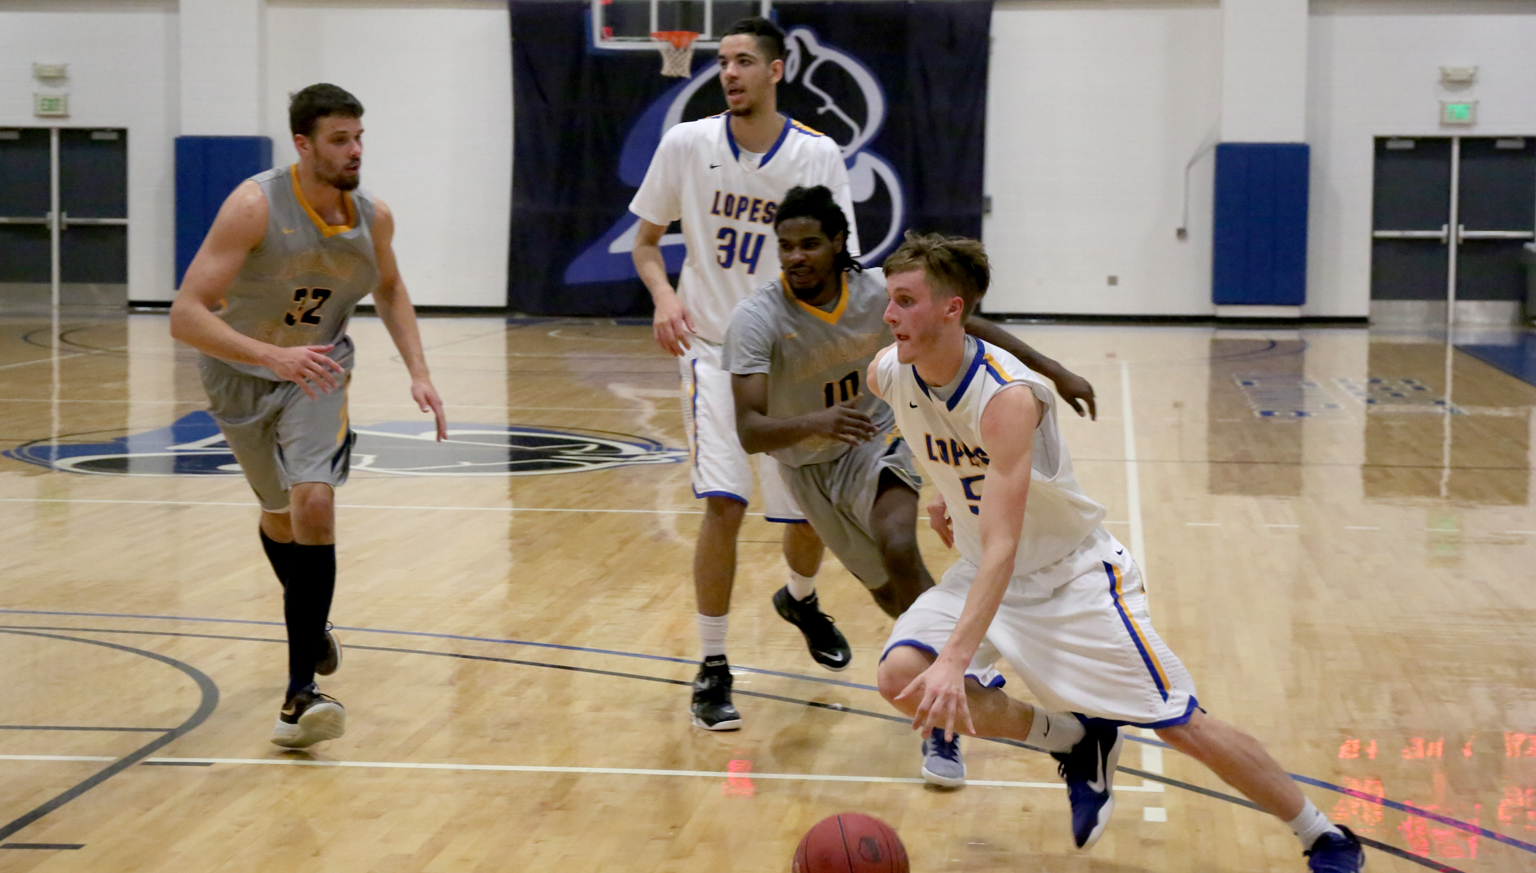 Michael Skinner drives past his defender in action against Laramie County Community College.